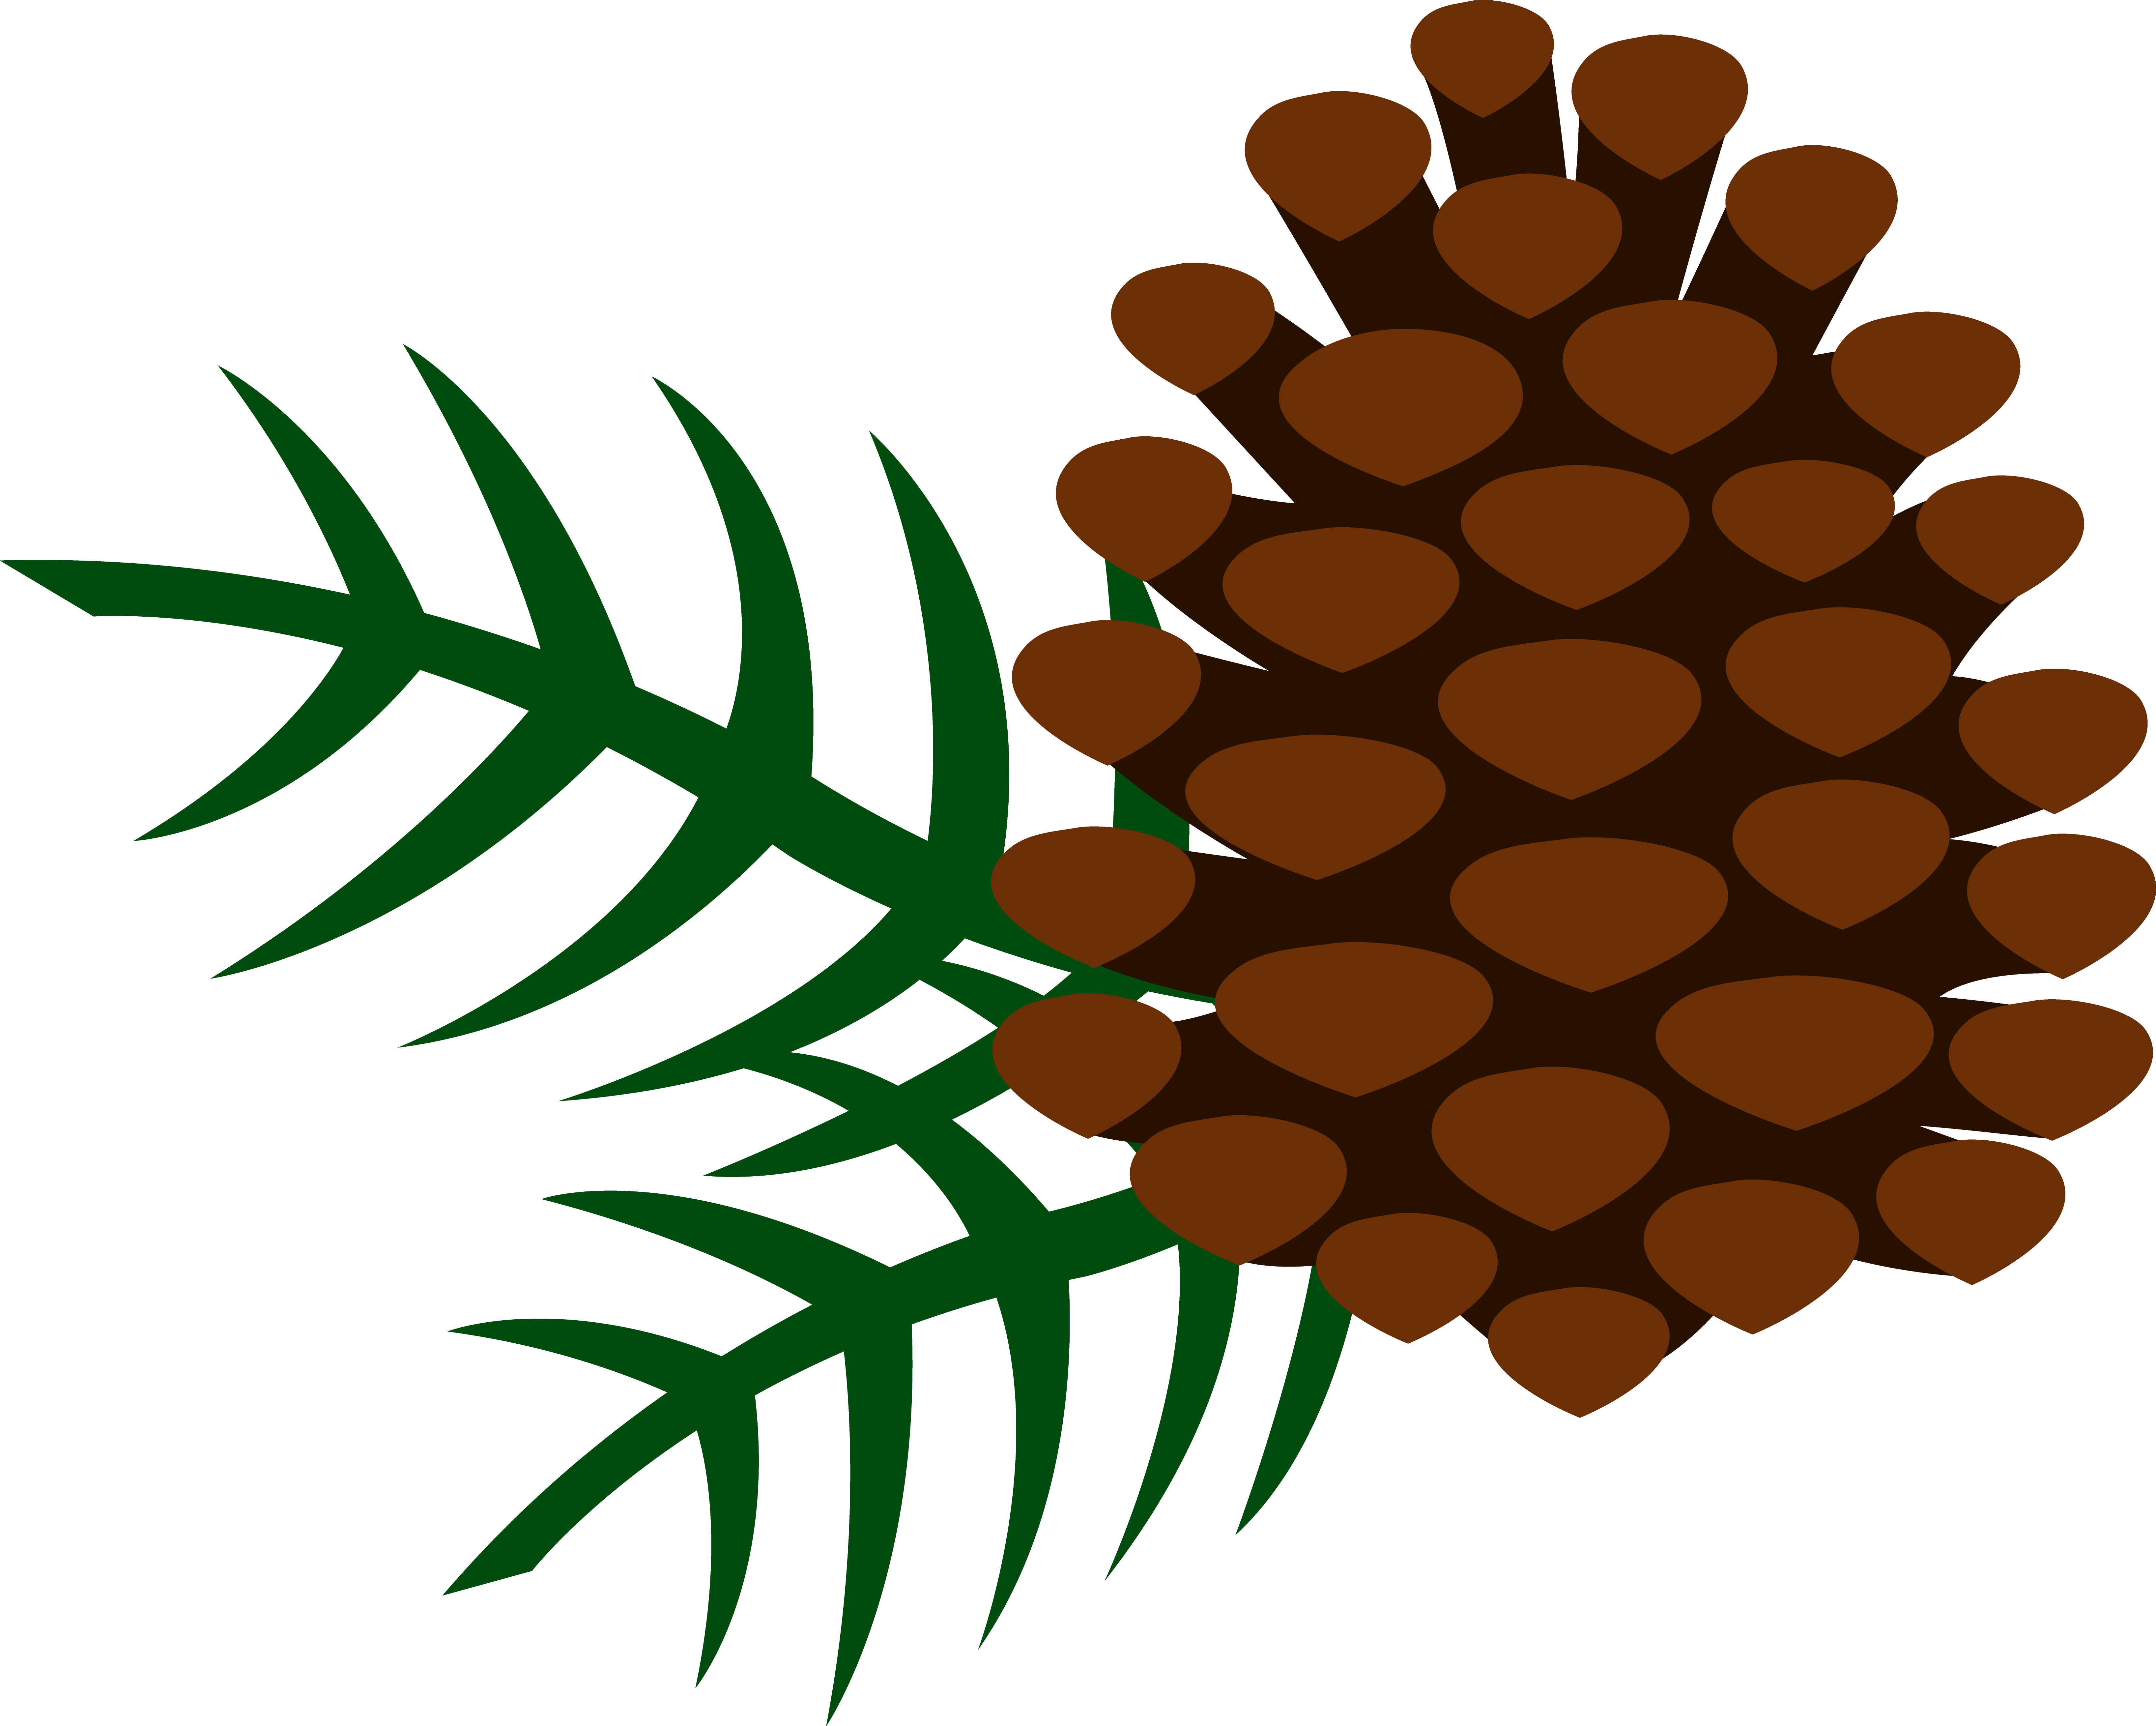 Pine Cone clipart #2, Download drawings